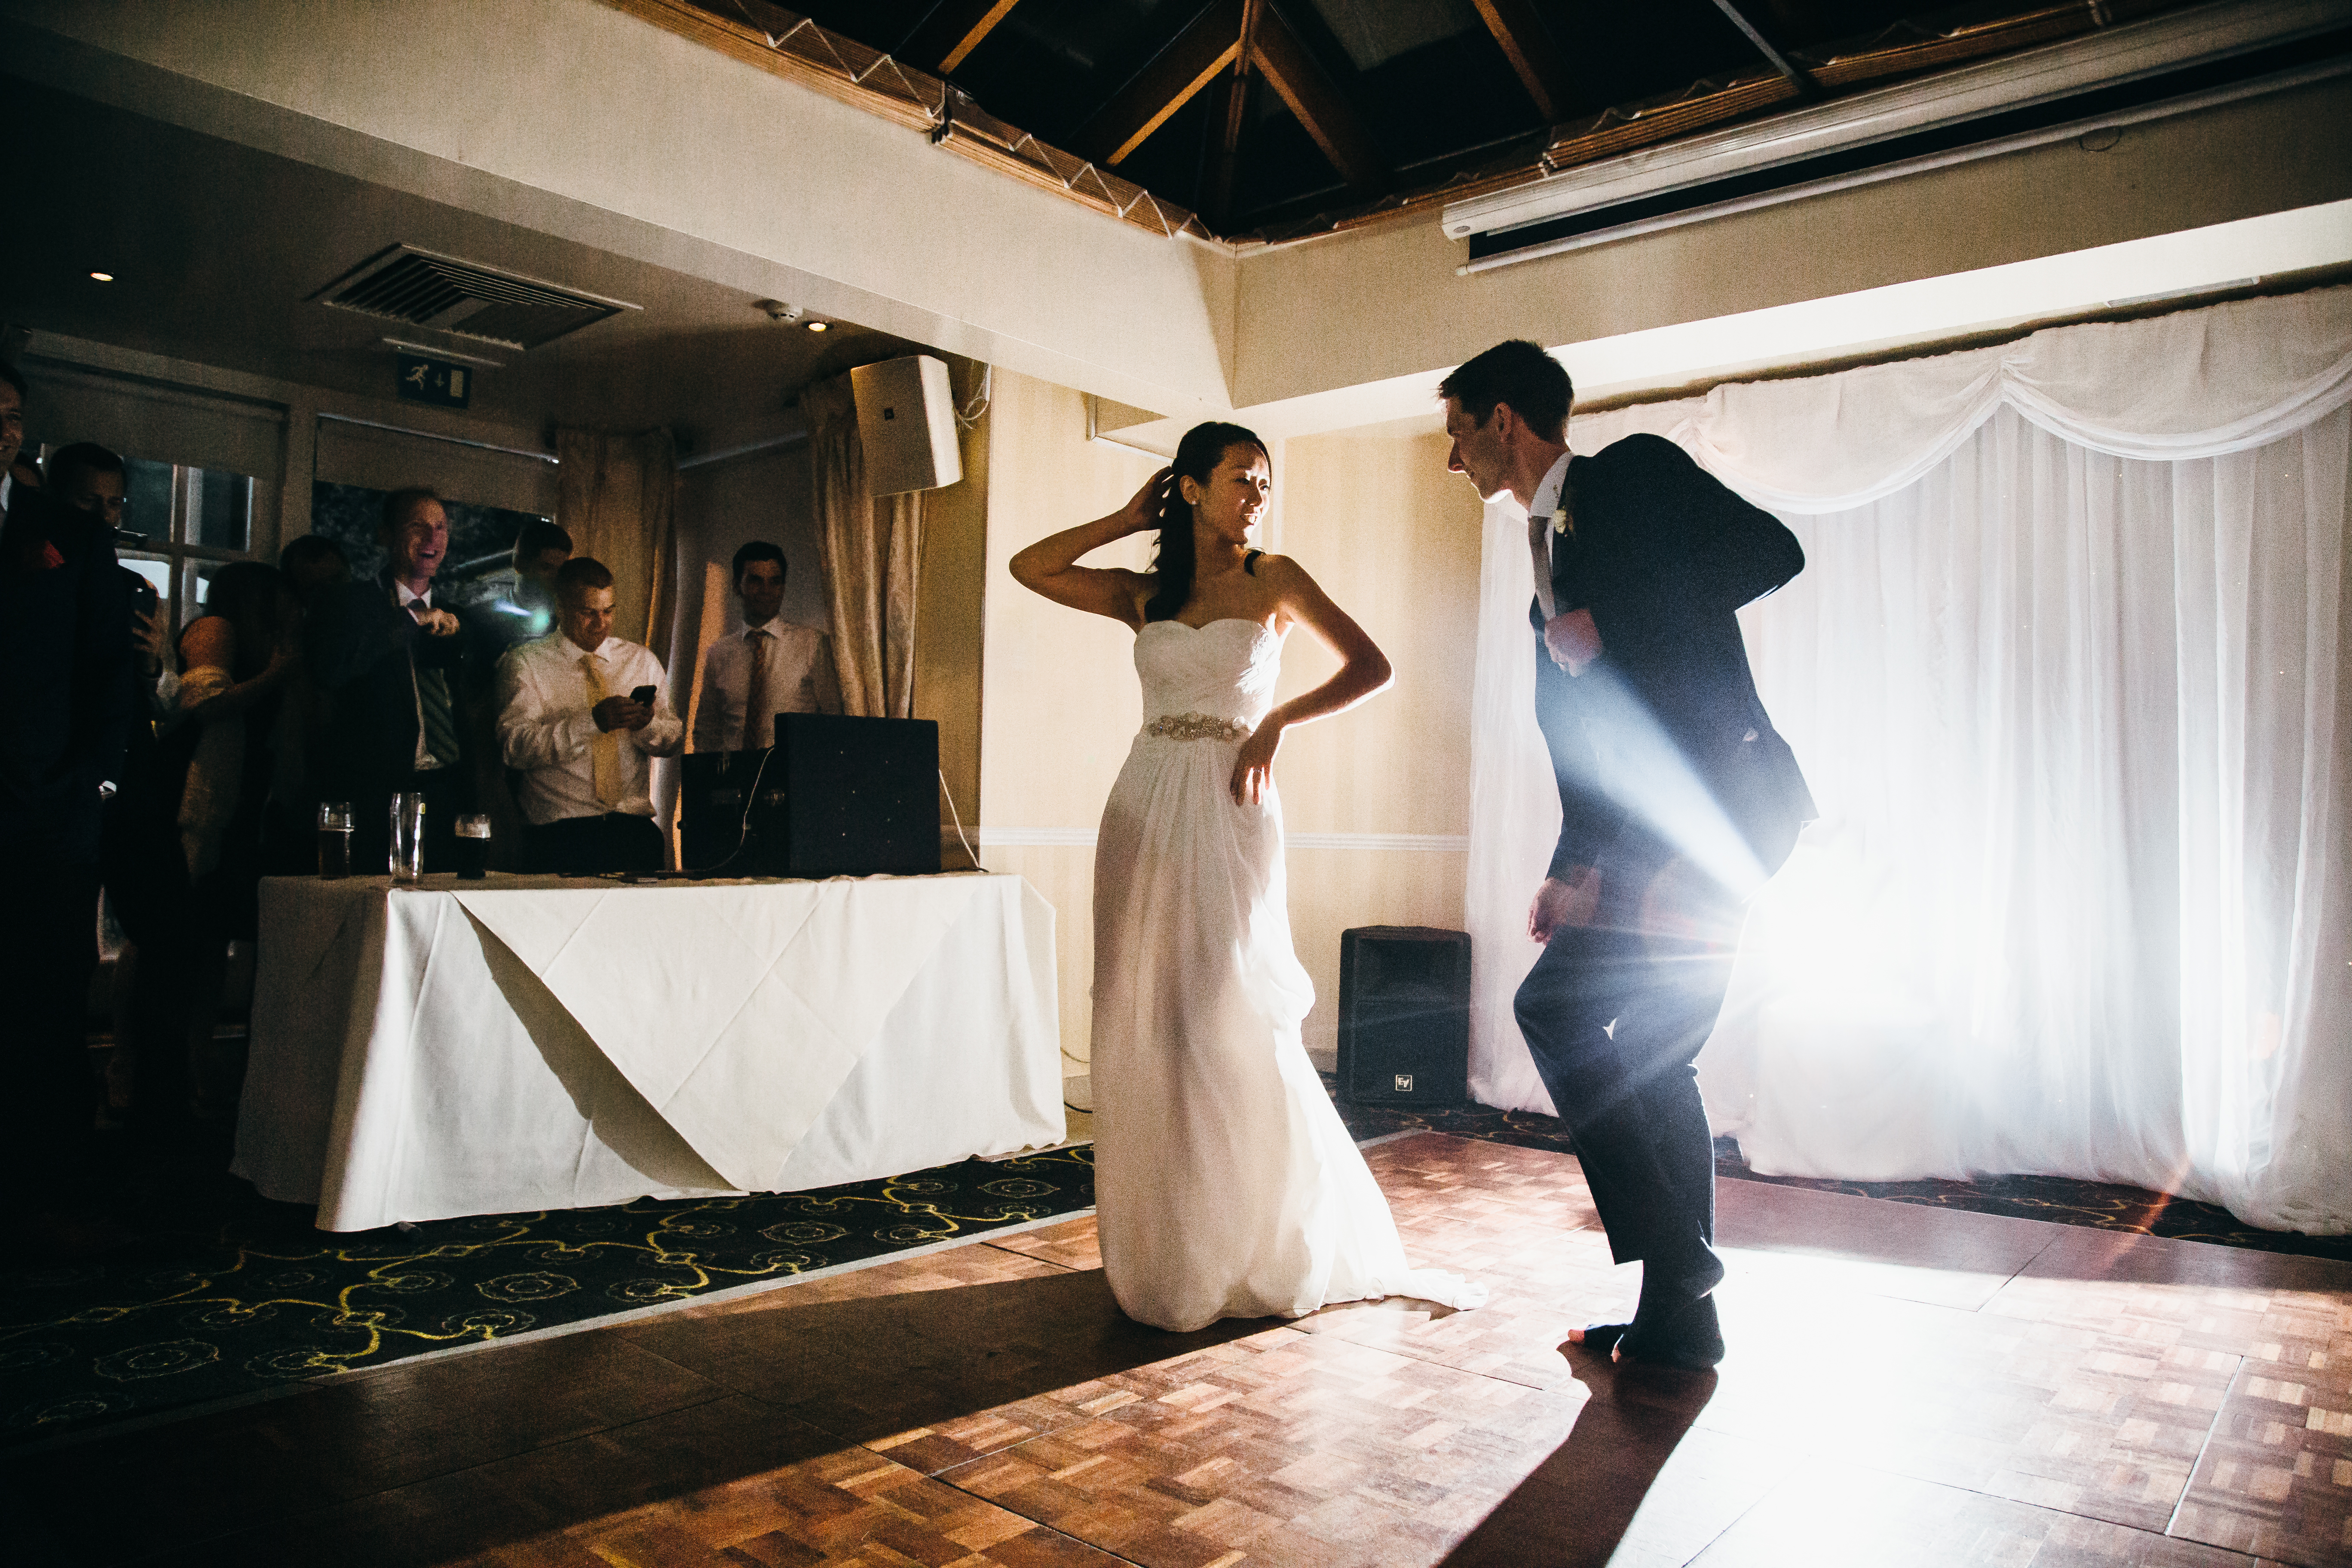 documentary wedding photography london and brighton speeches pulp fiction dance